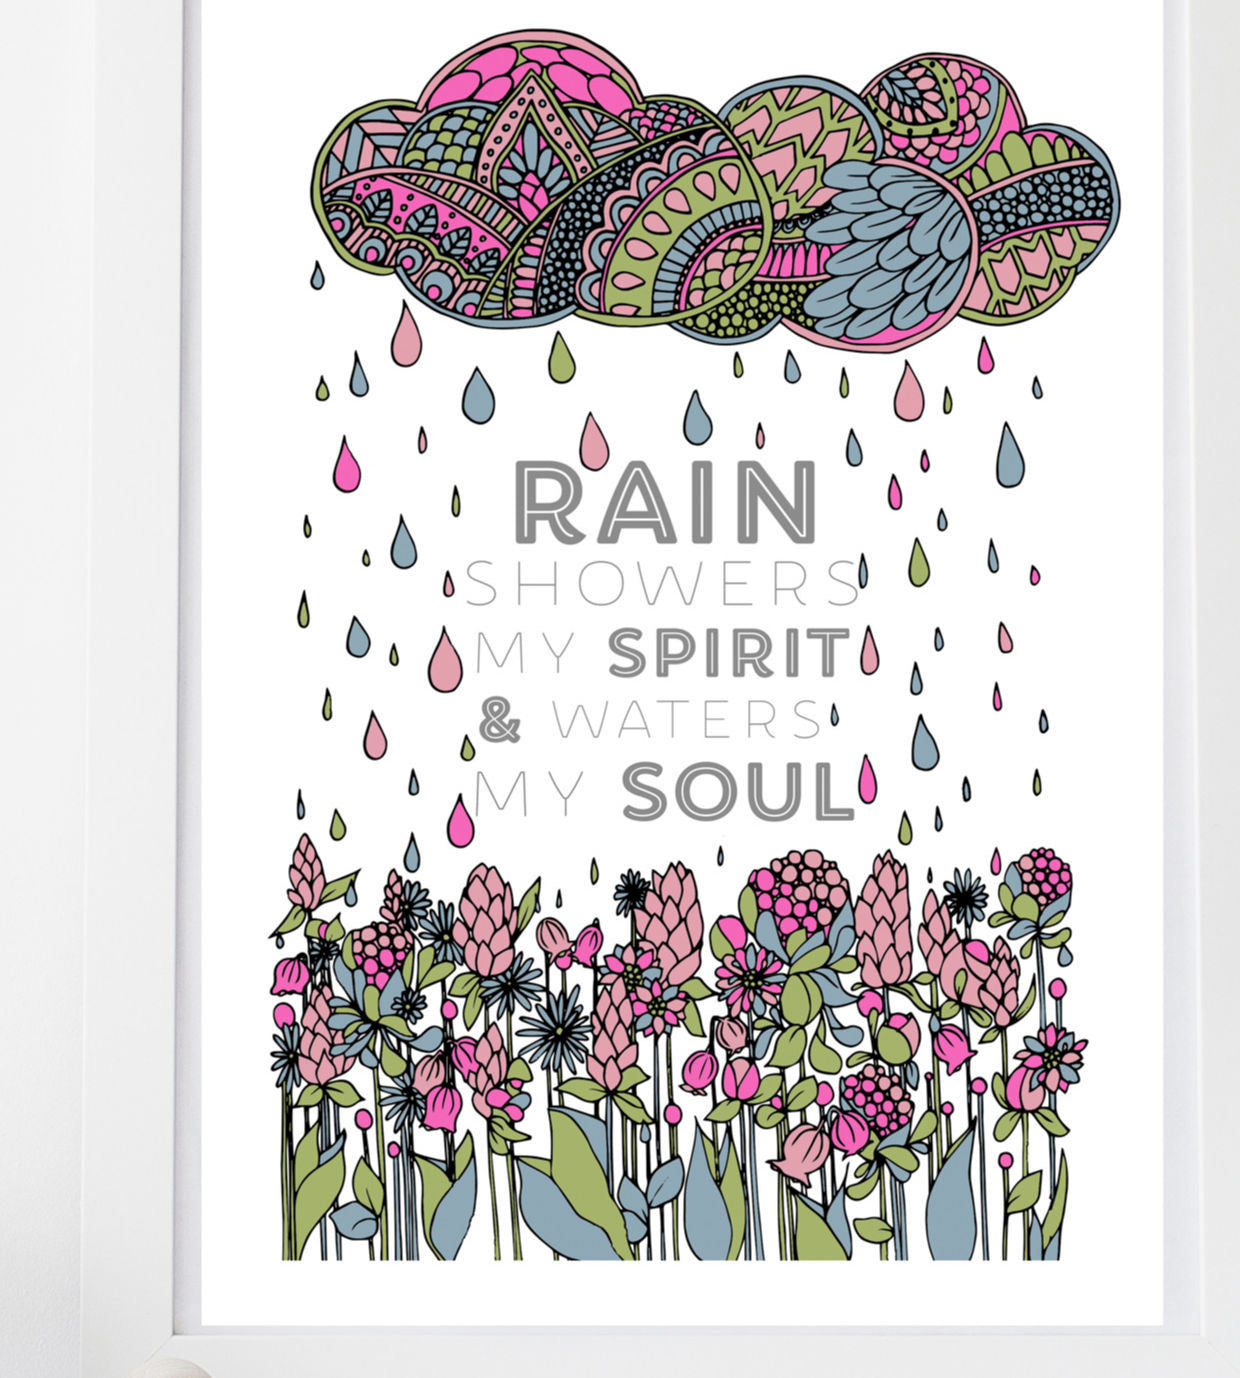 Rain showers my spirit and waters my soul print